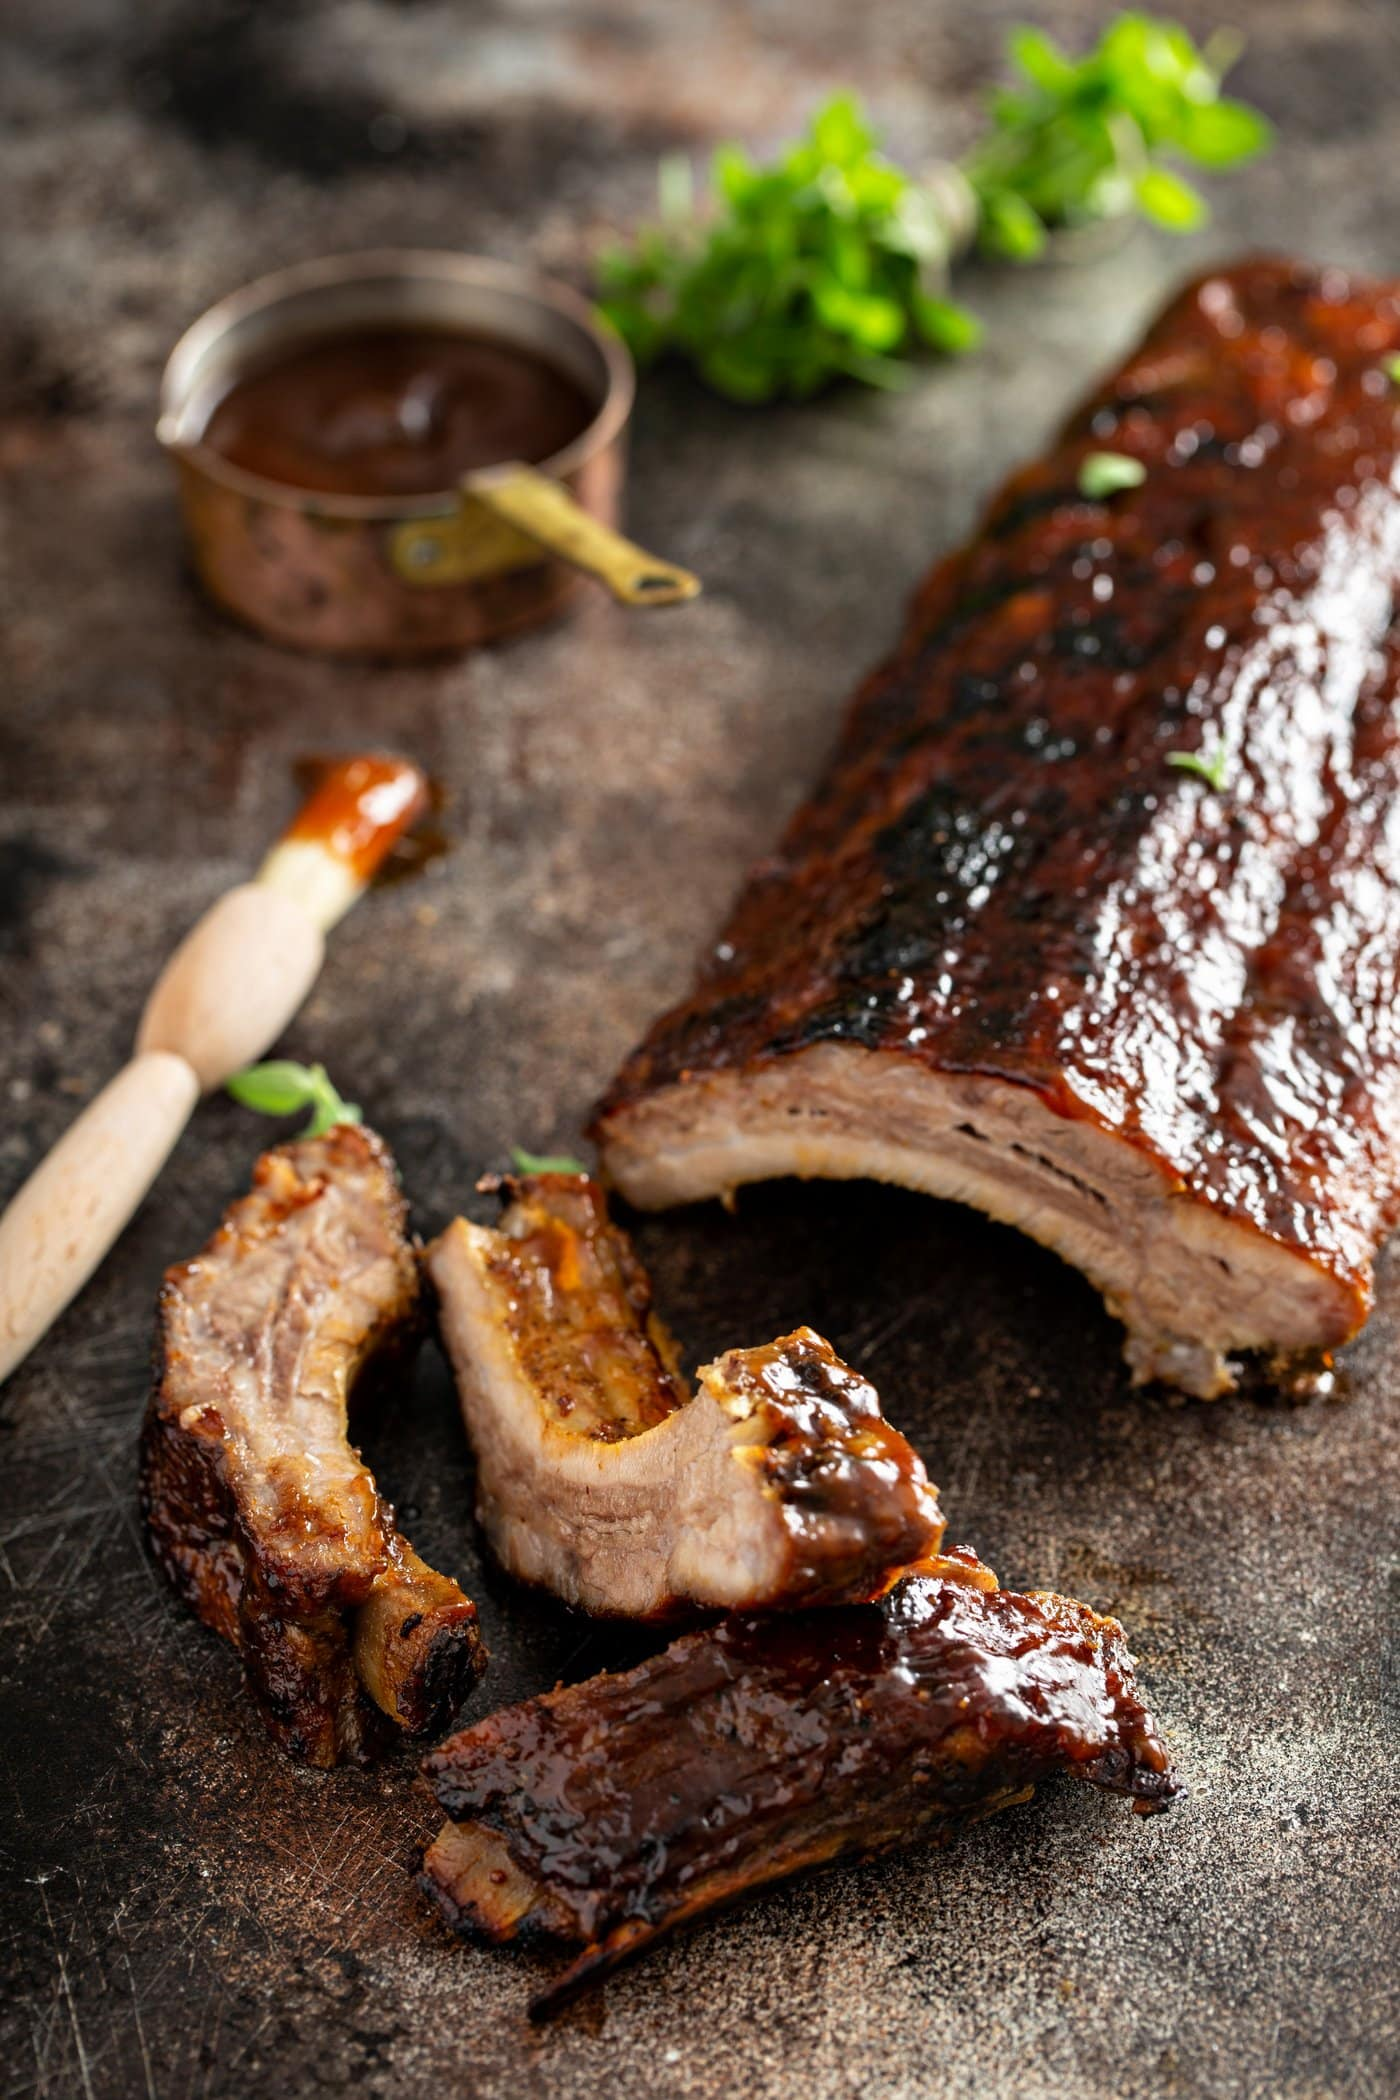 A rack of grilled pork ribs with a couple of ribs that are sliced off. A brush with glaze and a measuring cup of rub are in the background.